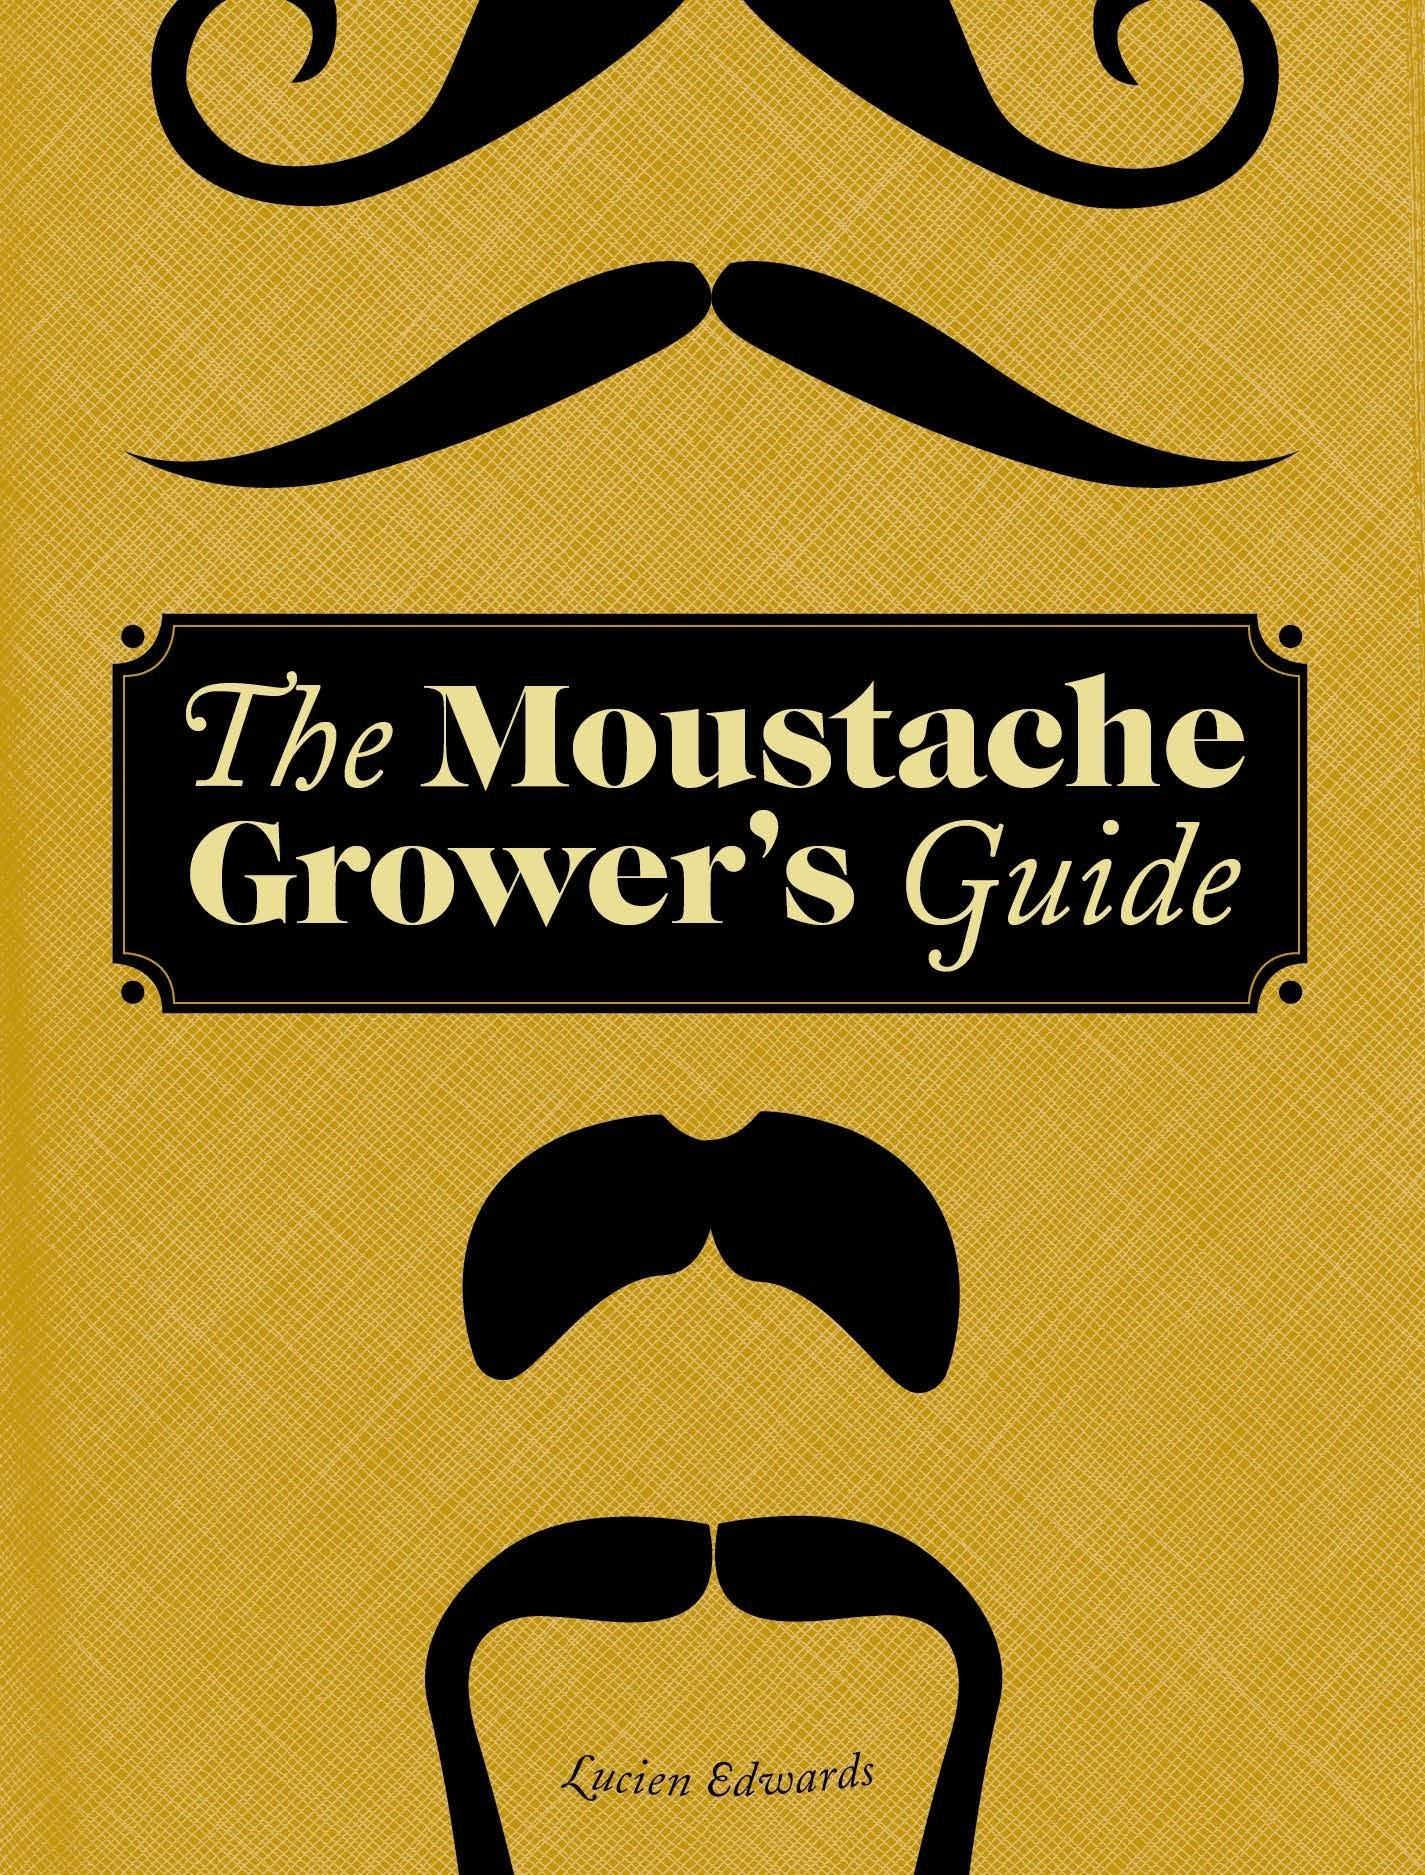 Moustache Grower's Guide book